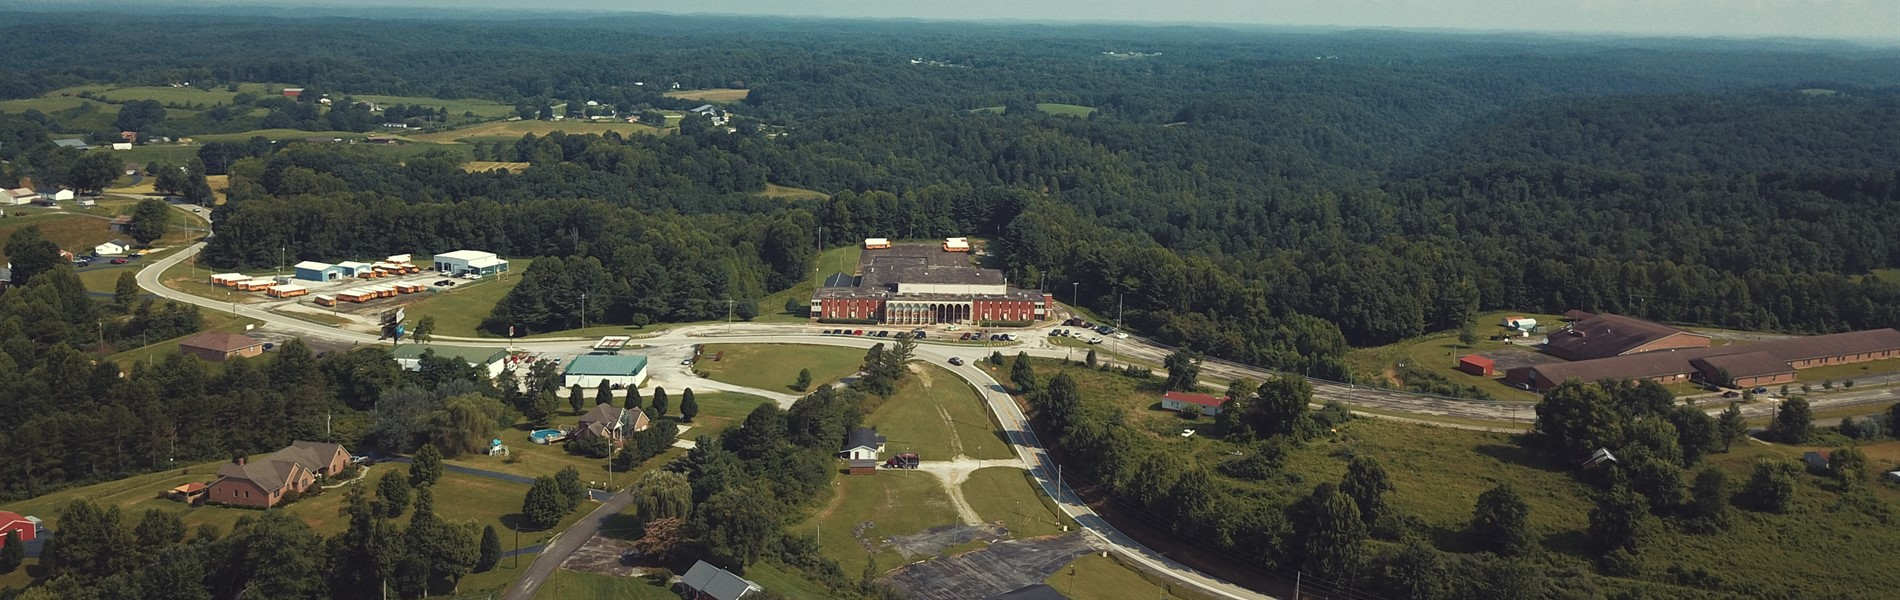 Aerial View of Jackson County Board of Education